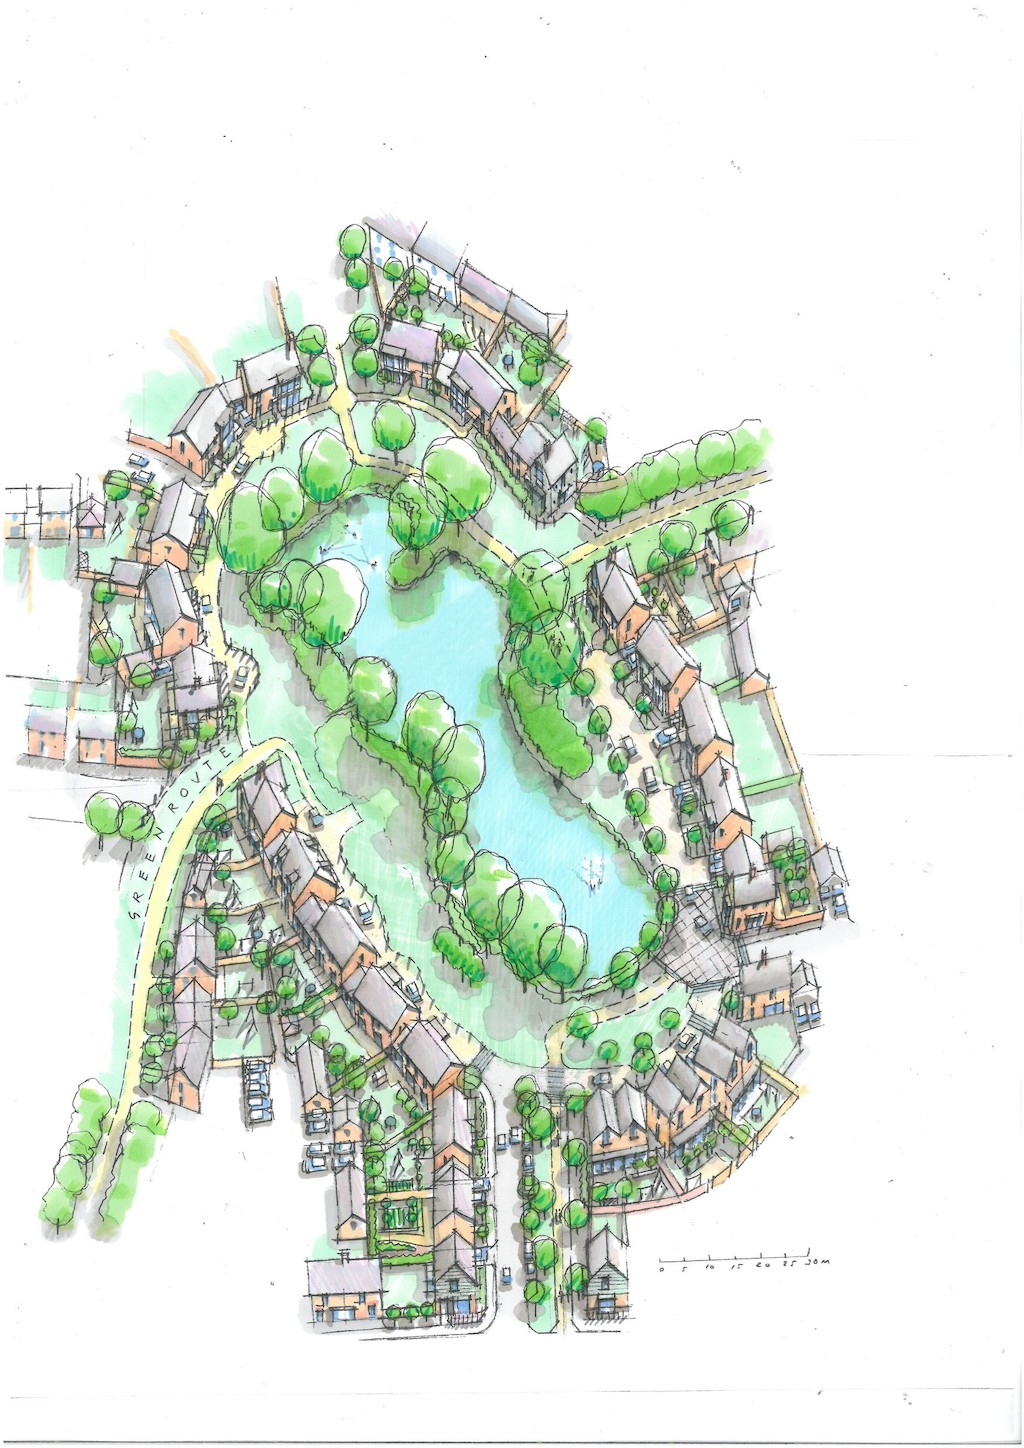 First phase of £115m 72-acre 'canal village' in Warwickshire gets the green light